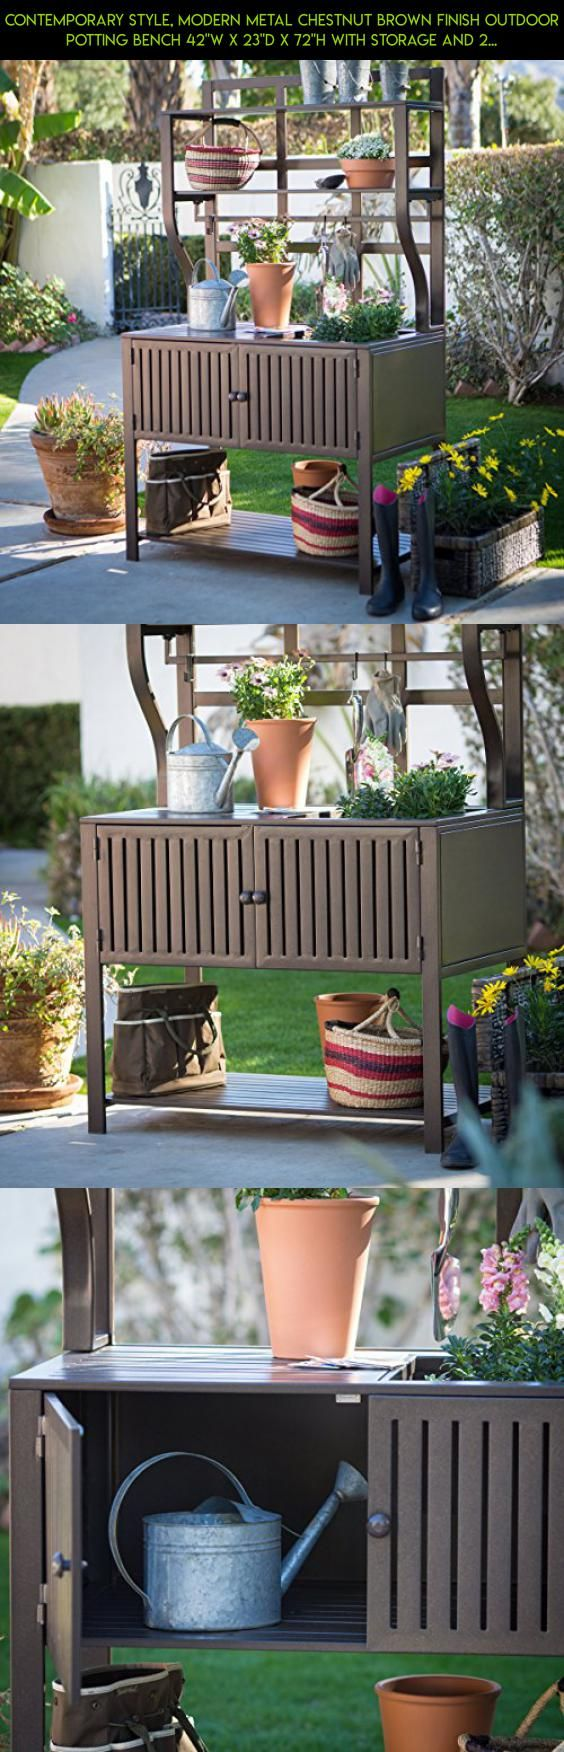 "Contemporary Style, Modern Metal Chestnut Brown Finish Outdoor Potting Bench 42""W x 23""D x 72""H With Storage and 2 Slatted Shelves, 7 Hooks for Hanging Gardening Tools #products #shopping #storage #drone #tech #plans #gadgets #fpv #technology #racing #42 #camera #parts #kit"